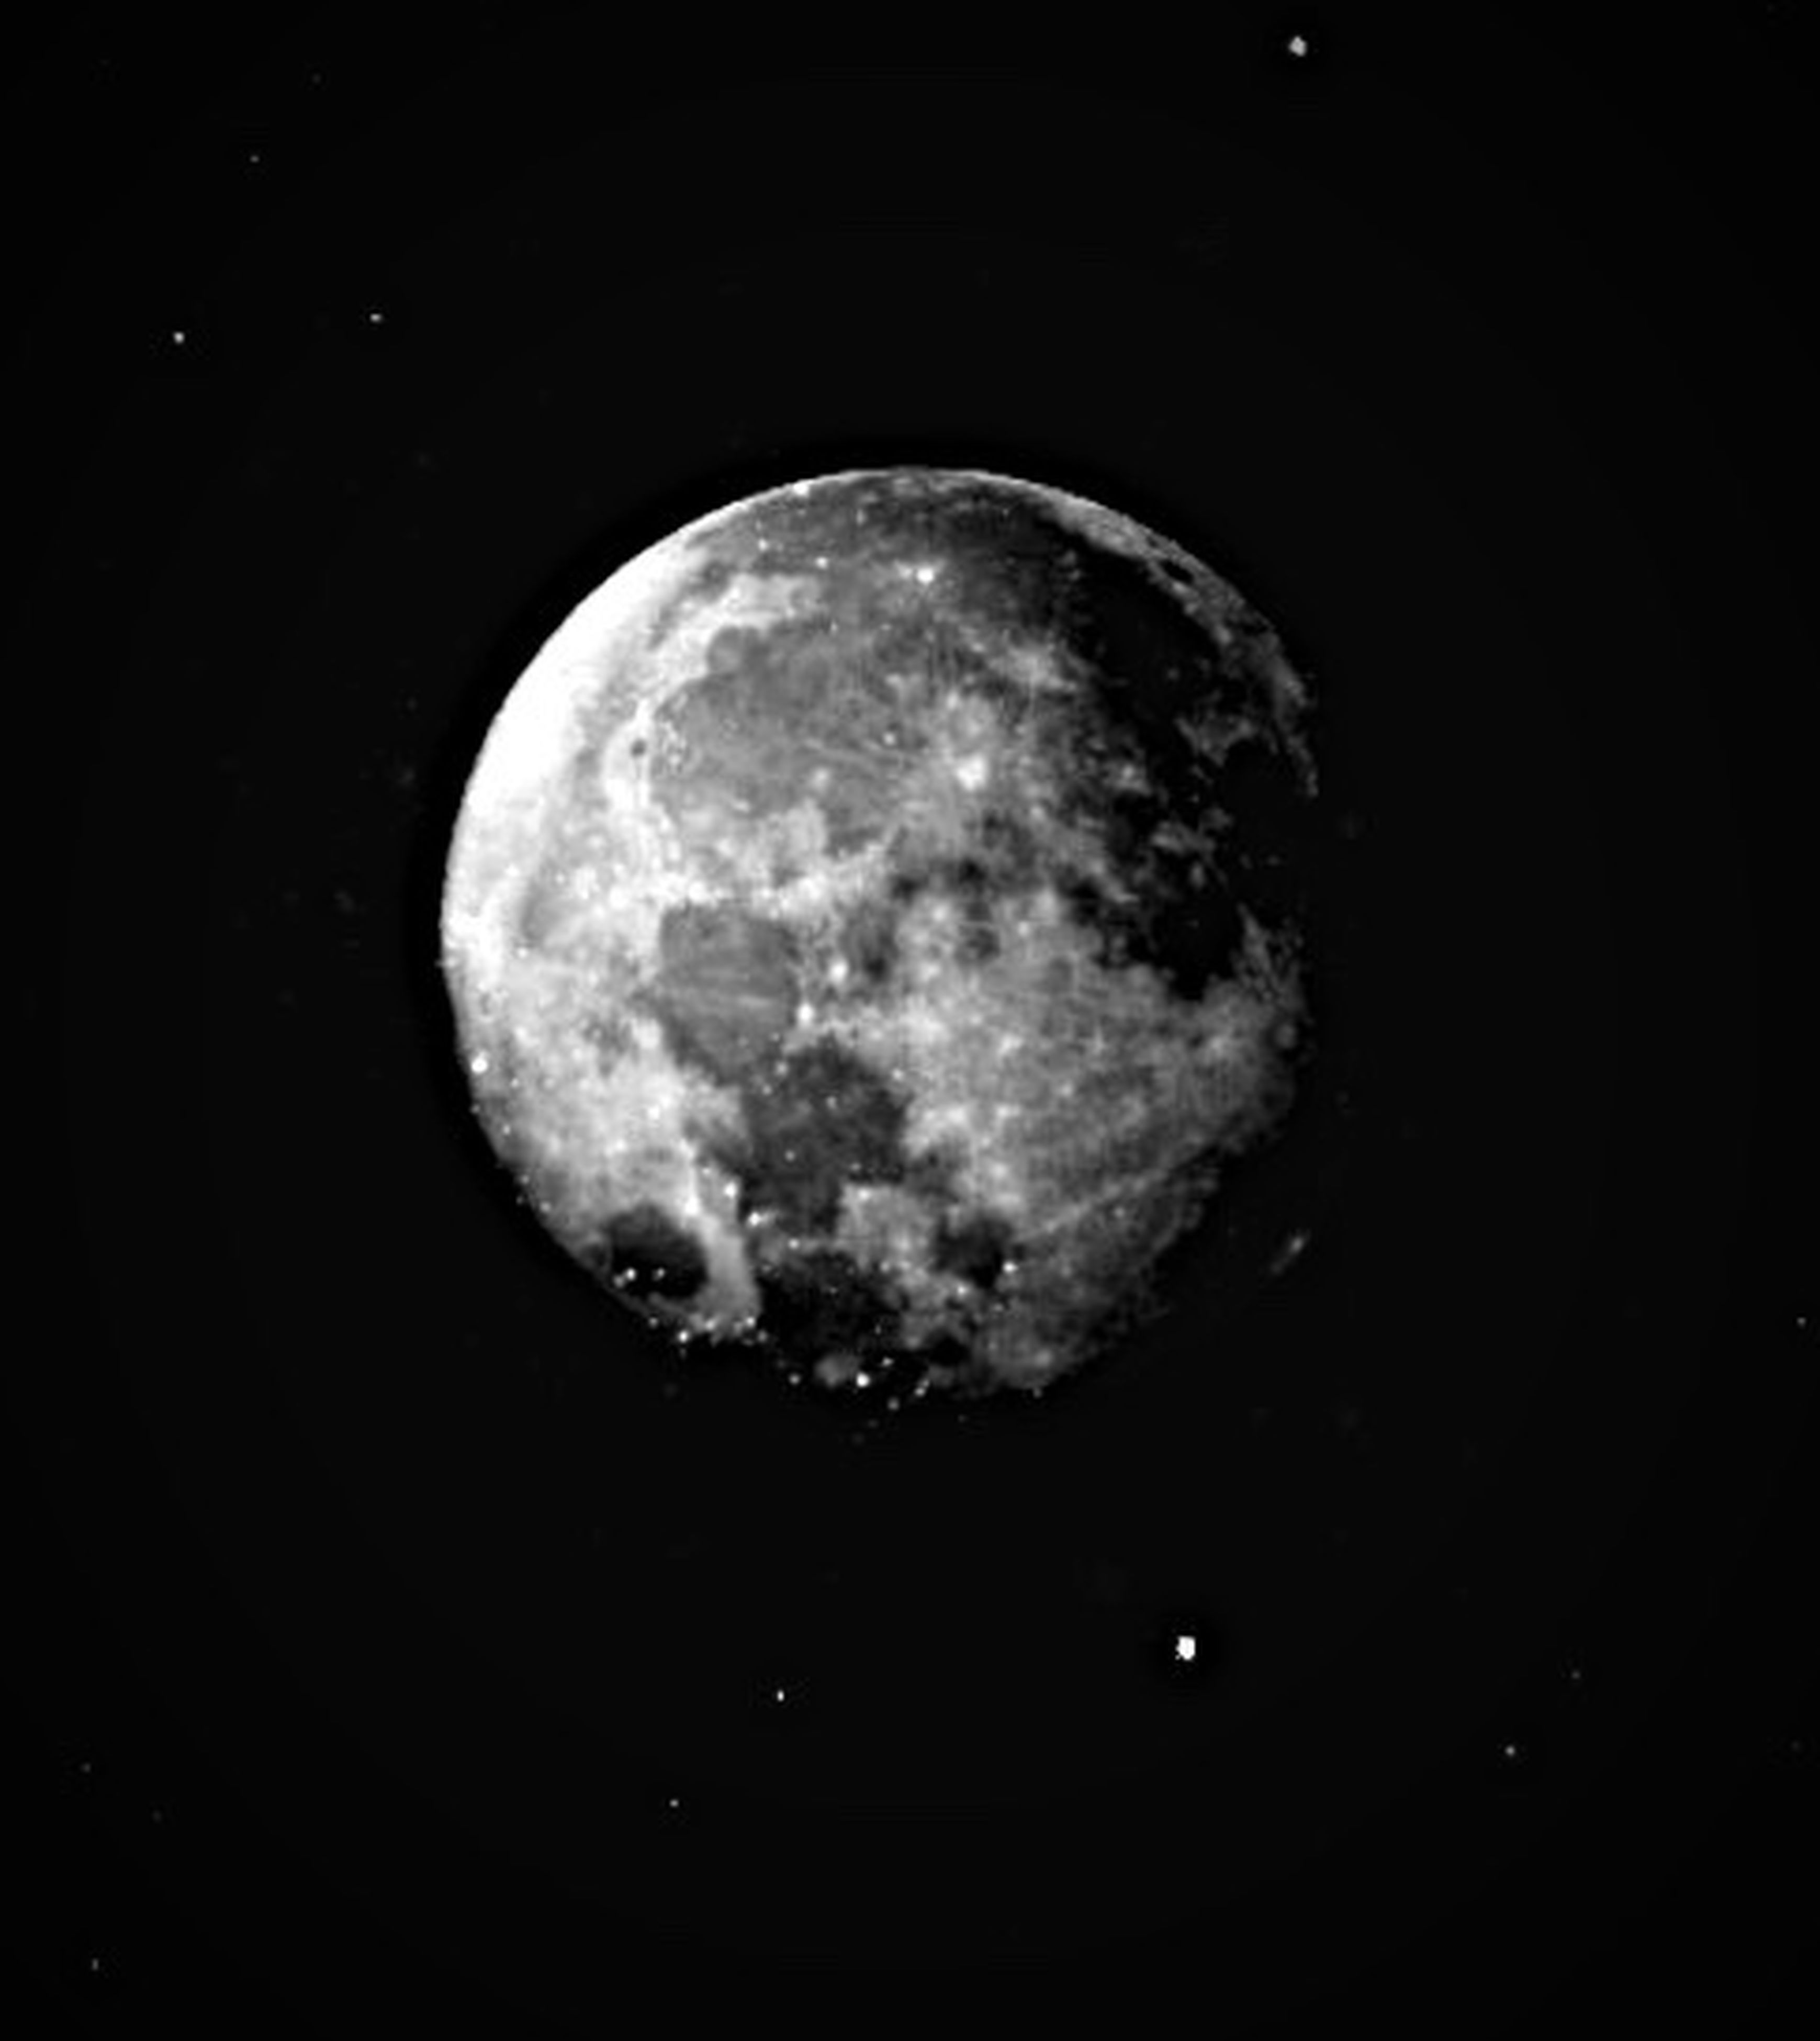 moon, night, nature, full moon, astronomy, beauty in nature, moon surface, tranquility, planetary moon, no people, idyllic, sky, scenics, outdoors, half moon, space, black background, star - space